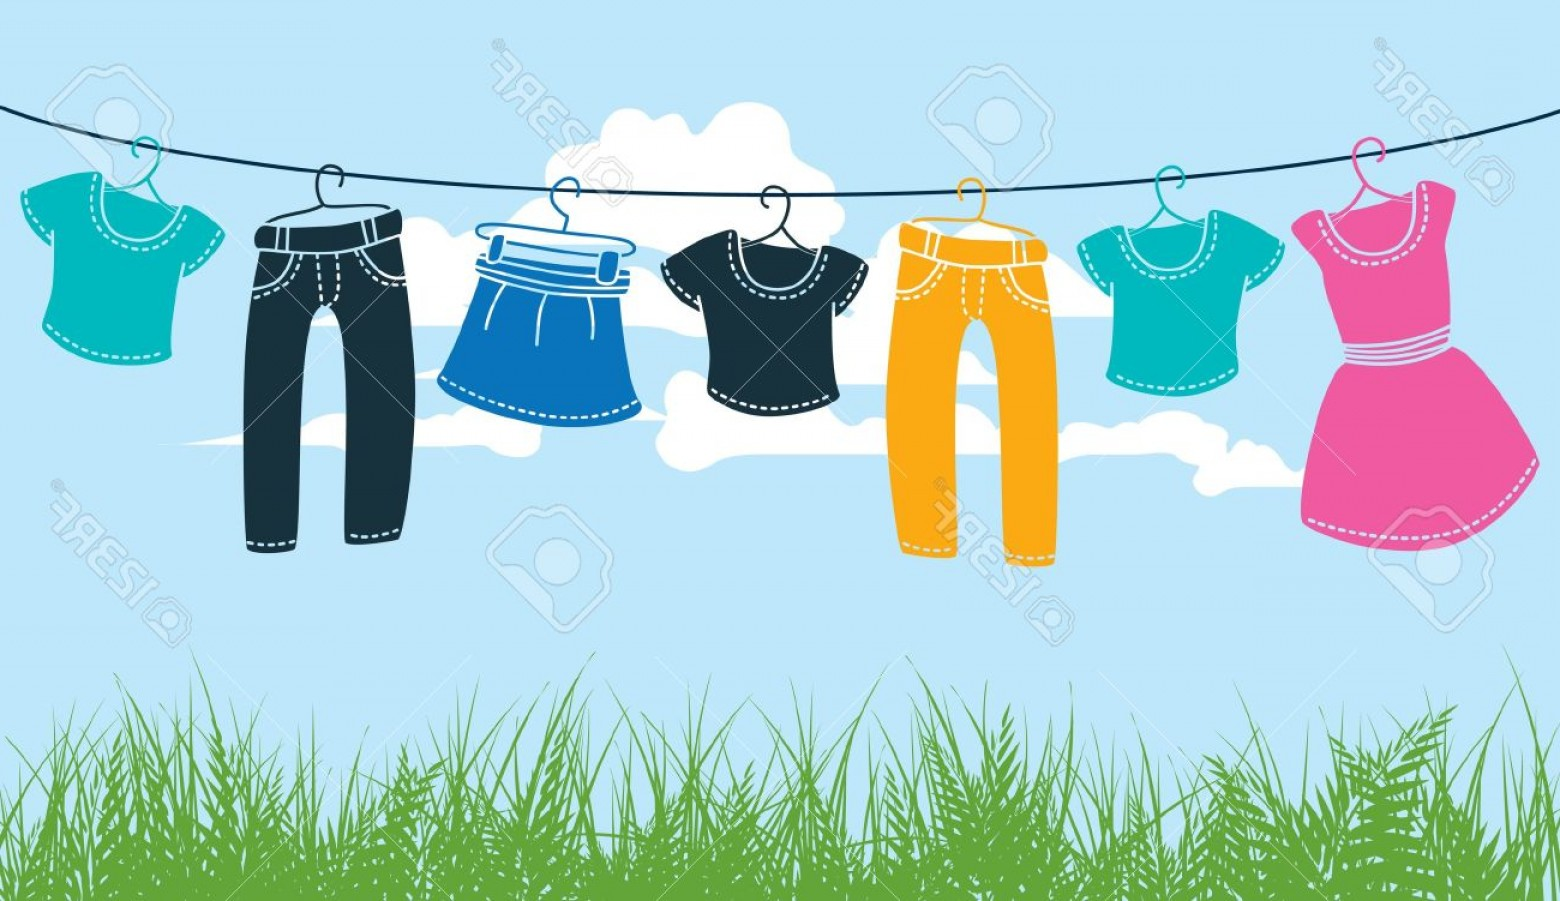 Clothes For Washing Vector: Photoclothes On Washing Line Against Blue Sky And Green Grass